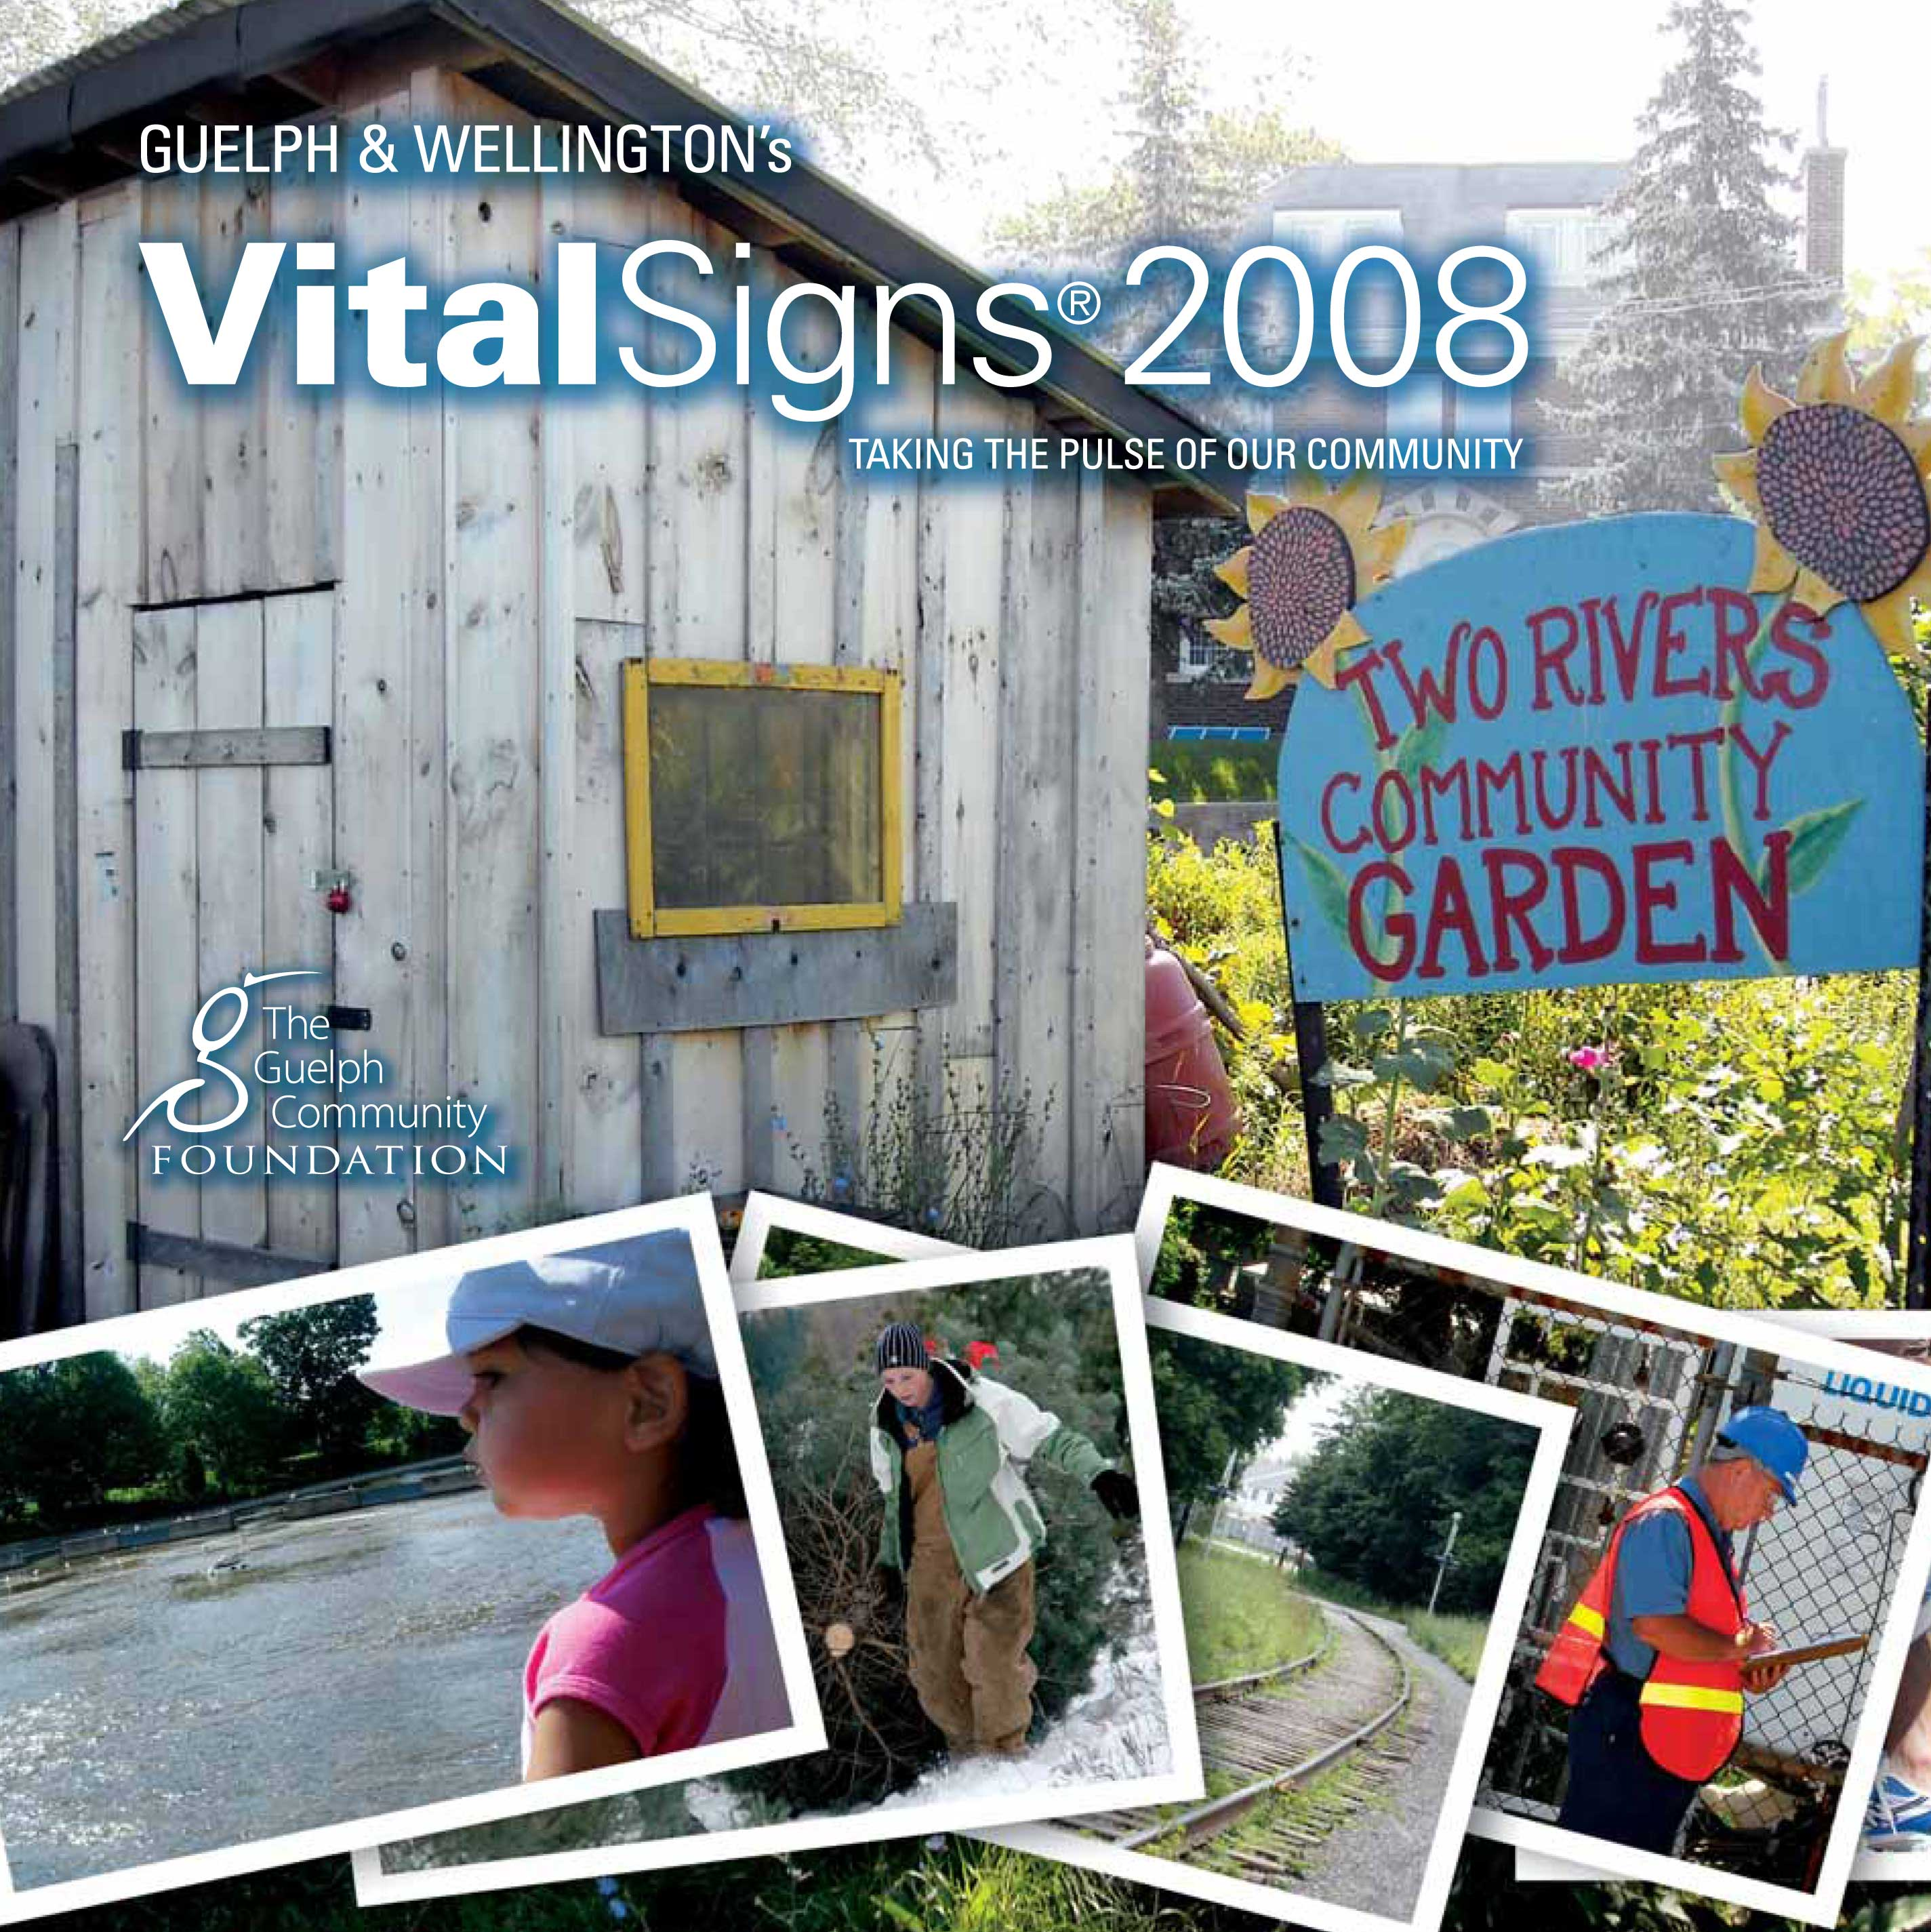 Guelph & Wellington's Vital Signs 2008